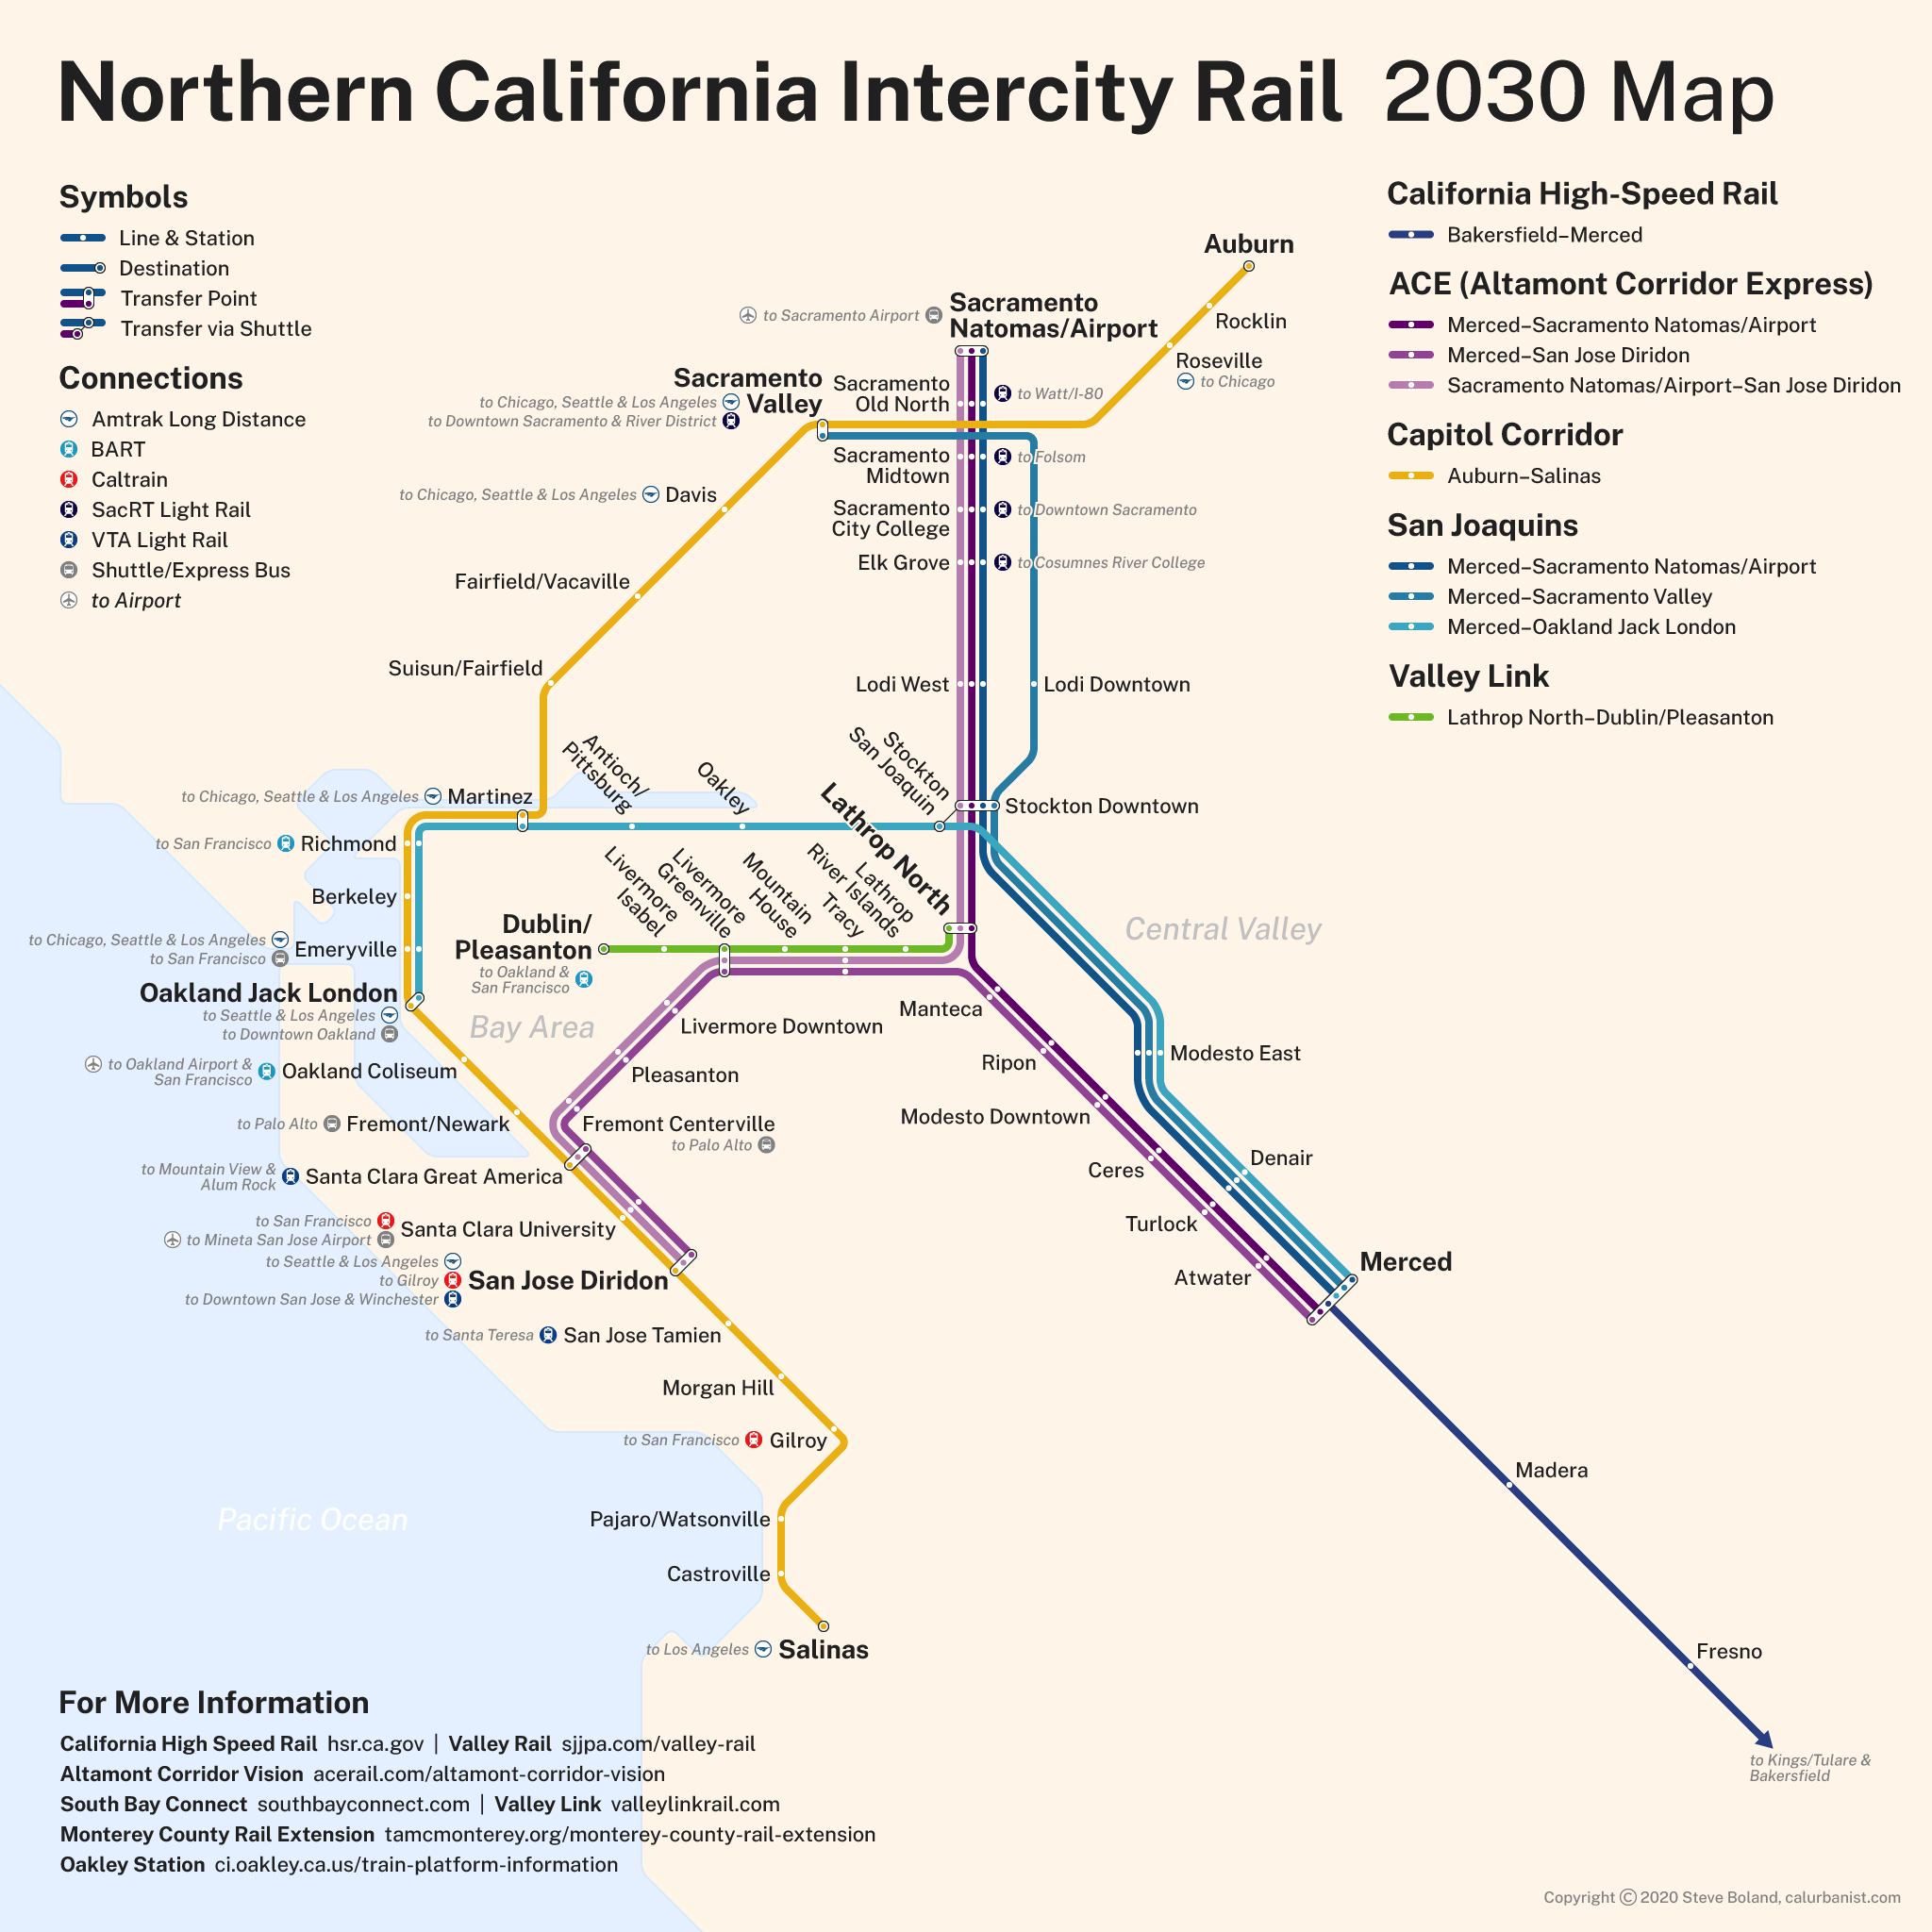 Northern California Future Regional Rail – Transit Maps ... on oklahoma railroad map, san francisco railroad map, michigan railroad map, british columbia railroad map, california railroad map, houston area railroad map, oakland railroad map, marta route map, el dorado county railroad map, colorado railroad map,